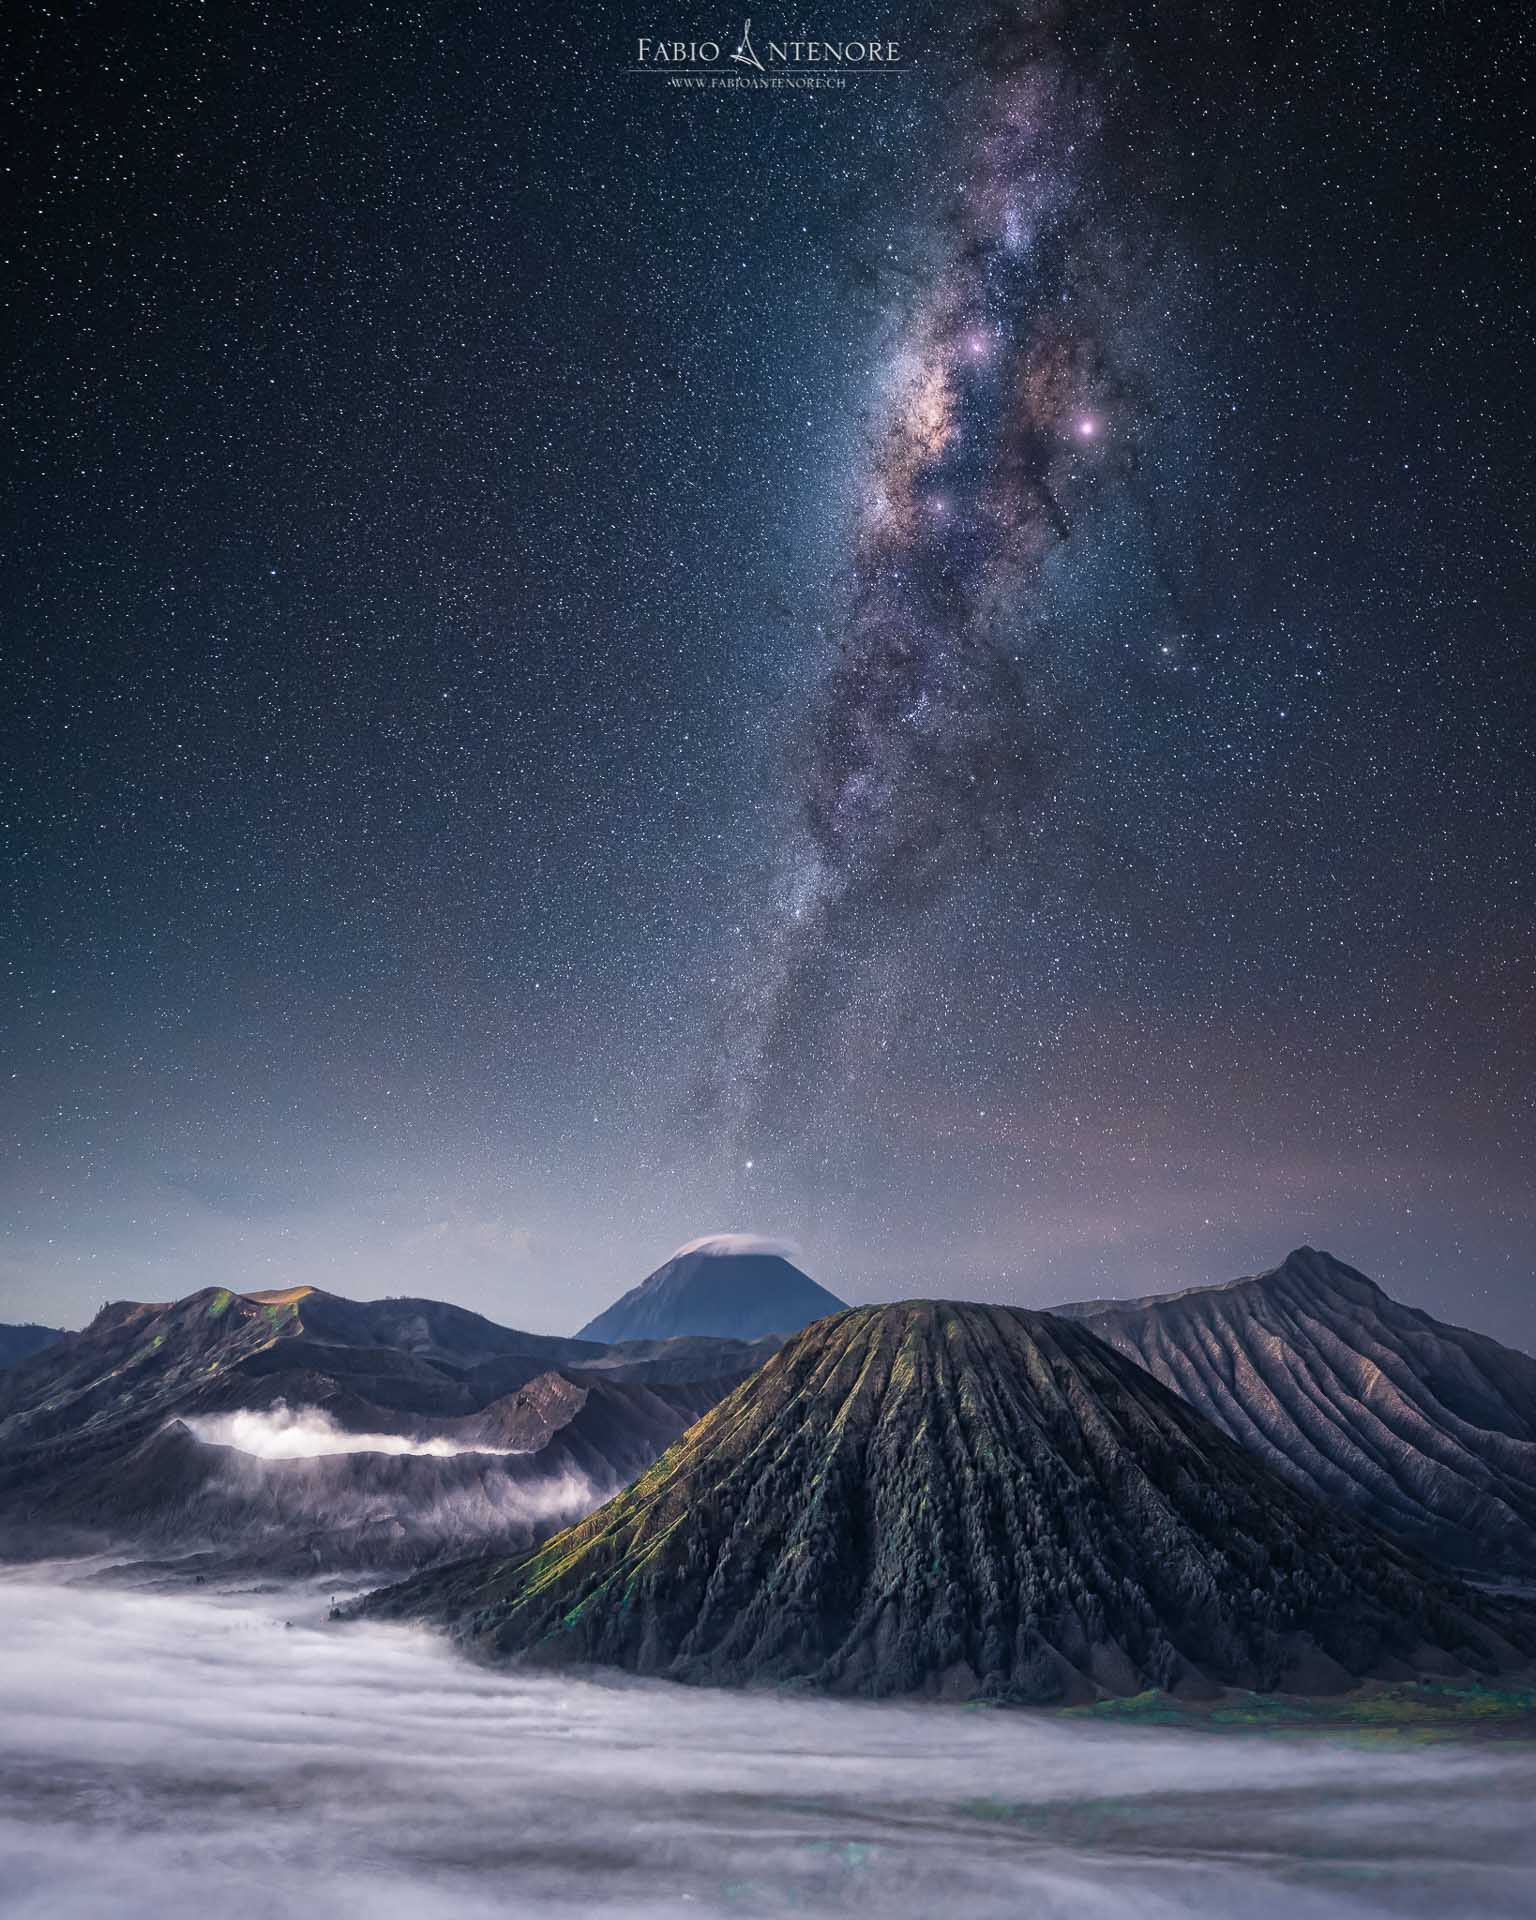 Best places to see the Milky Way in Asia